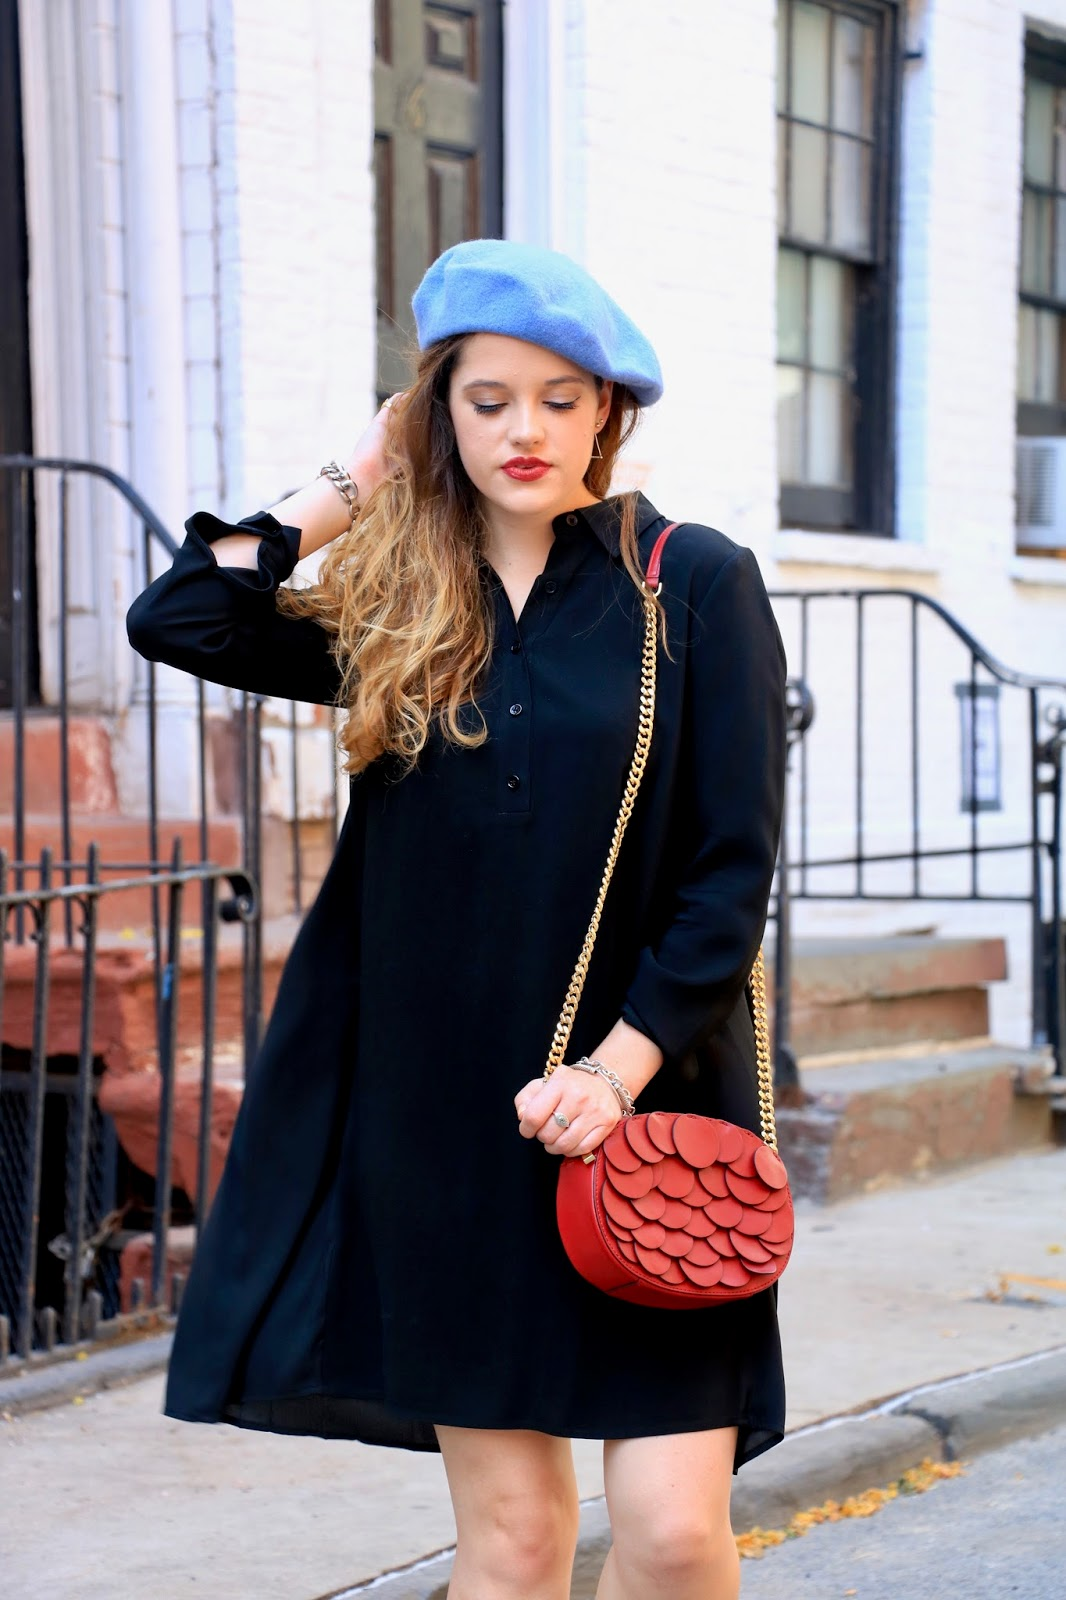 Fashion blogger Kathleen Harper showing off beret outfit ideas